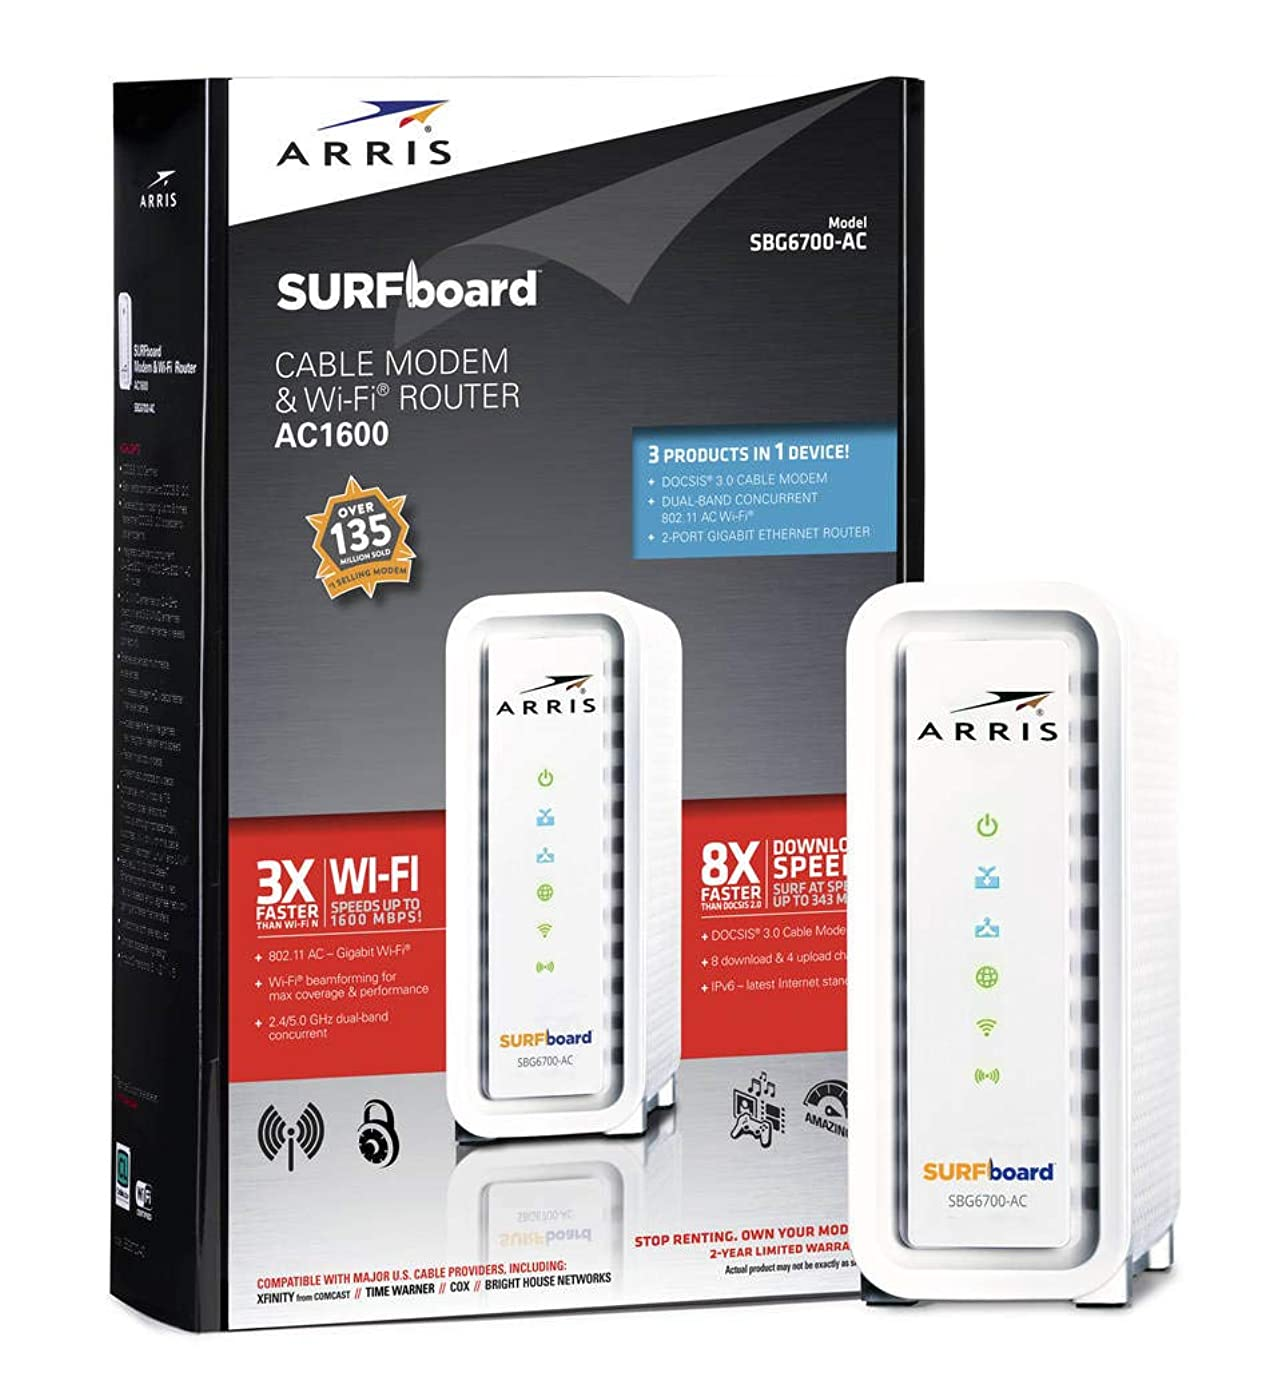 ARRIS SURFboard SBG6700AC DOCSIS 3.0 Cable Modem/ Wi-Fi AC1600 Router - Retail Packaging - White, Model: SBG6700AC, Electronic Store & More